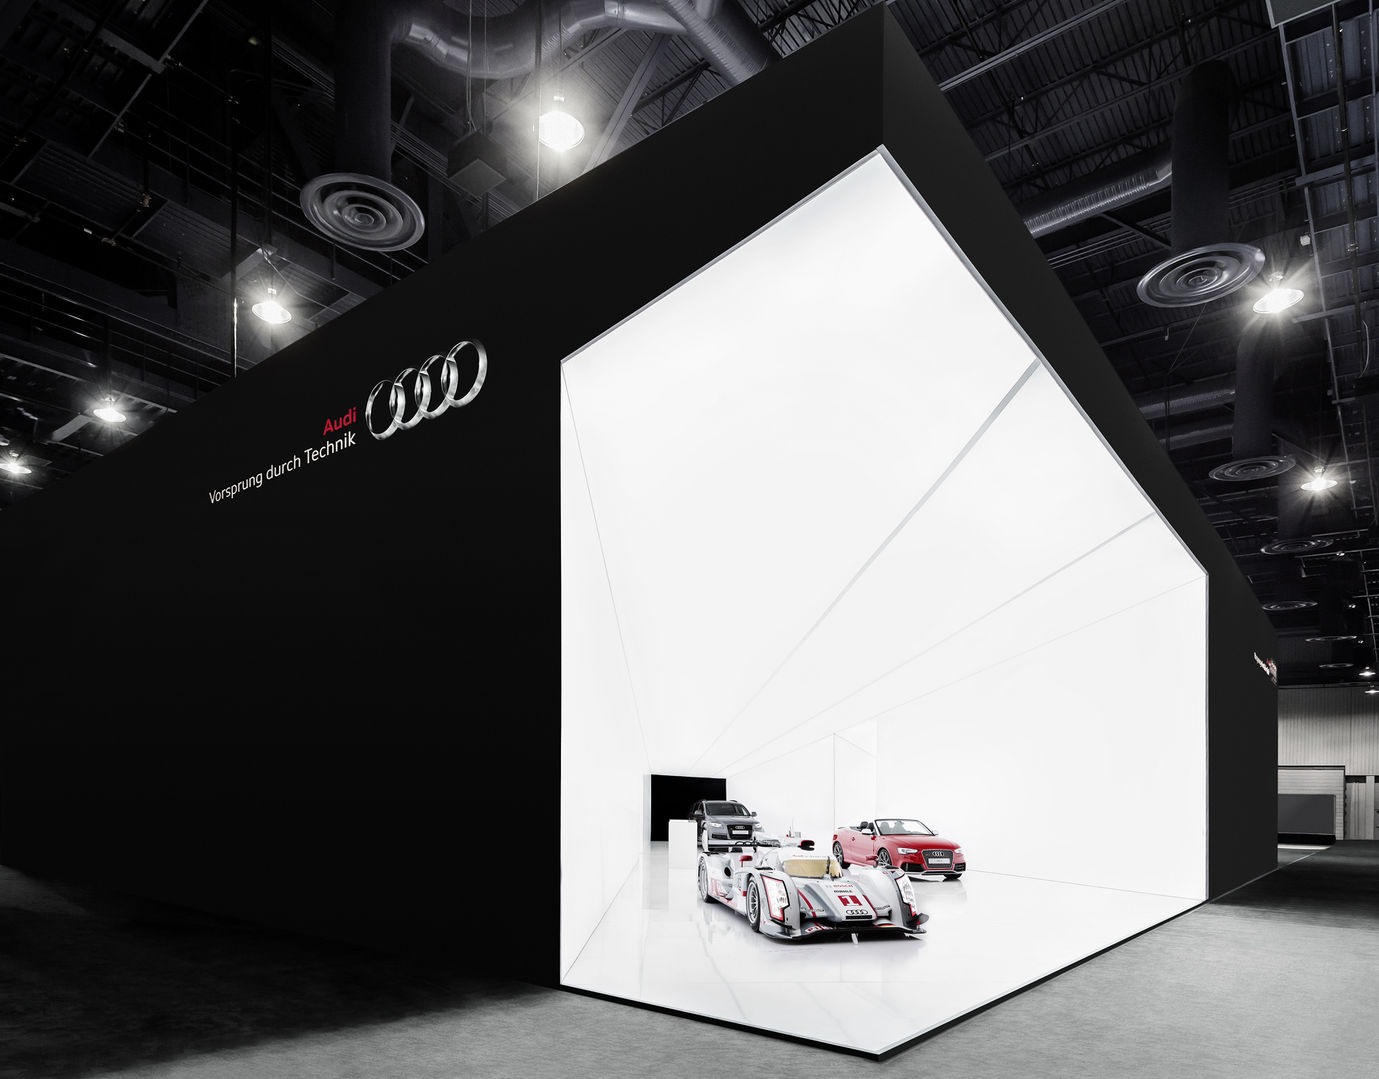 Exhibition Stand Lighting Guide : Audi ag − cone of light entry if world design guide